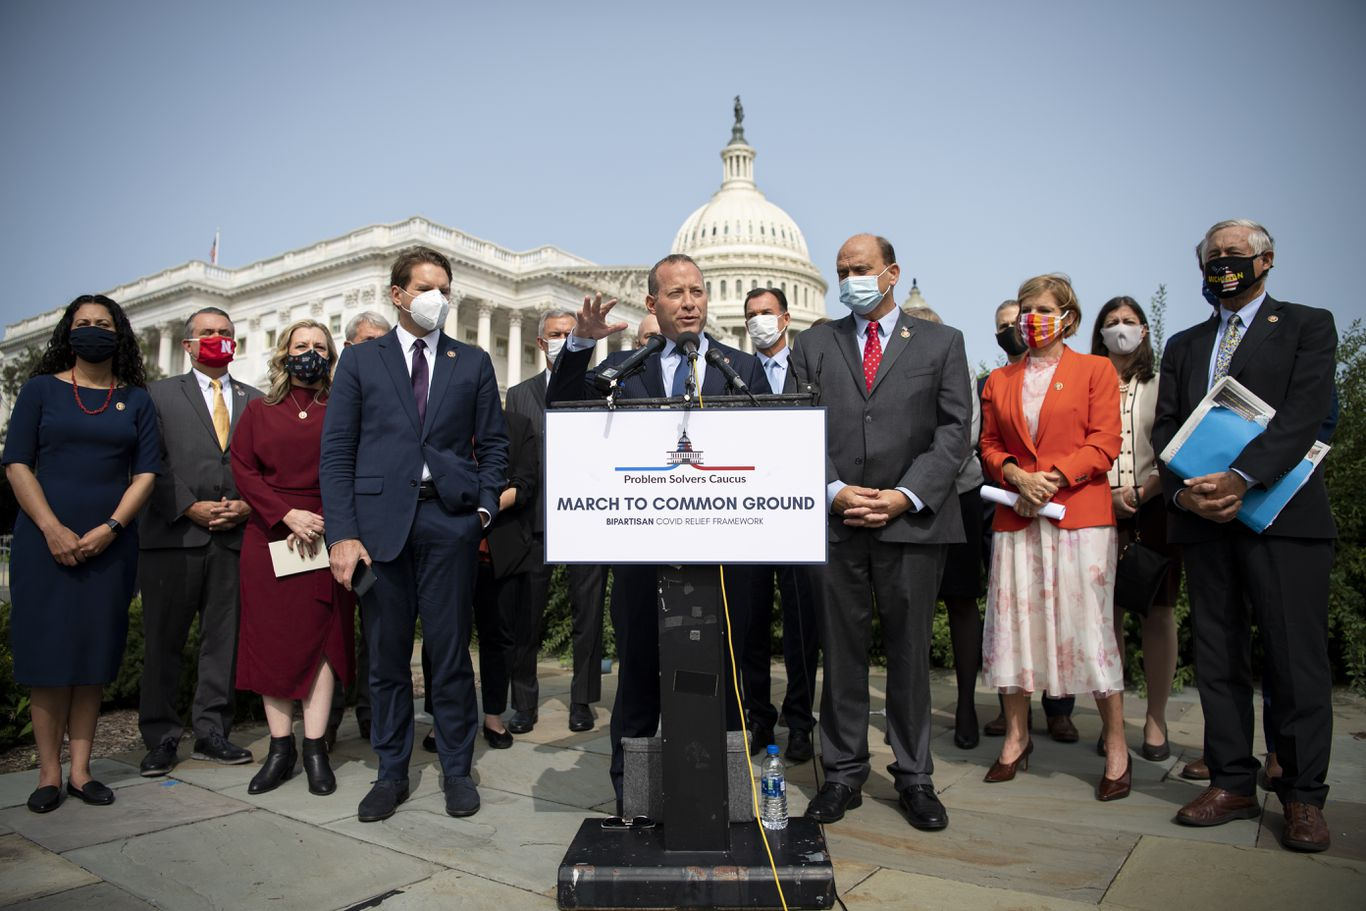 people speaking at an outdoor press conference in front of U.S. capitol